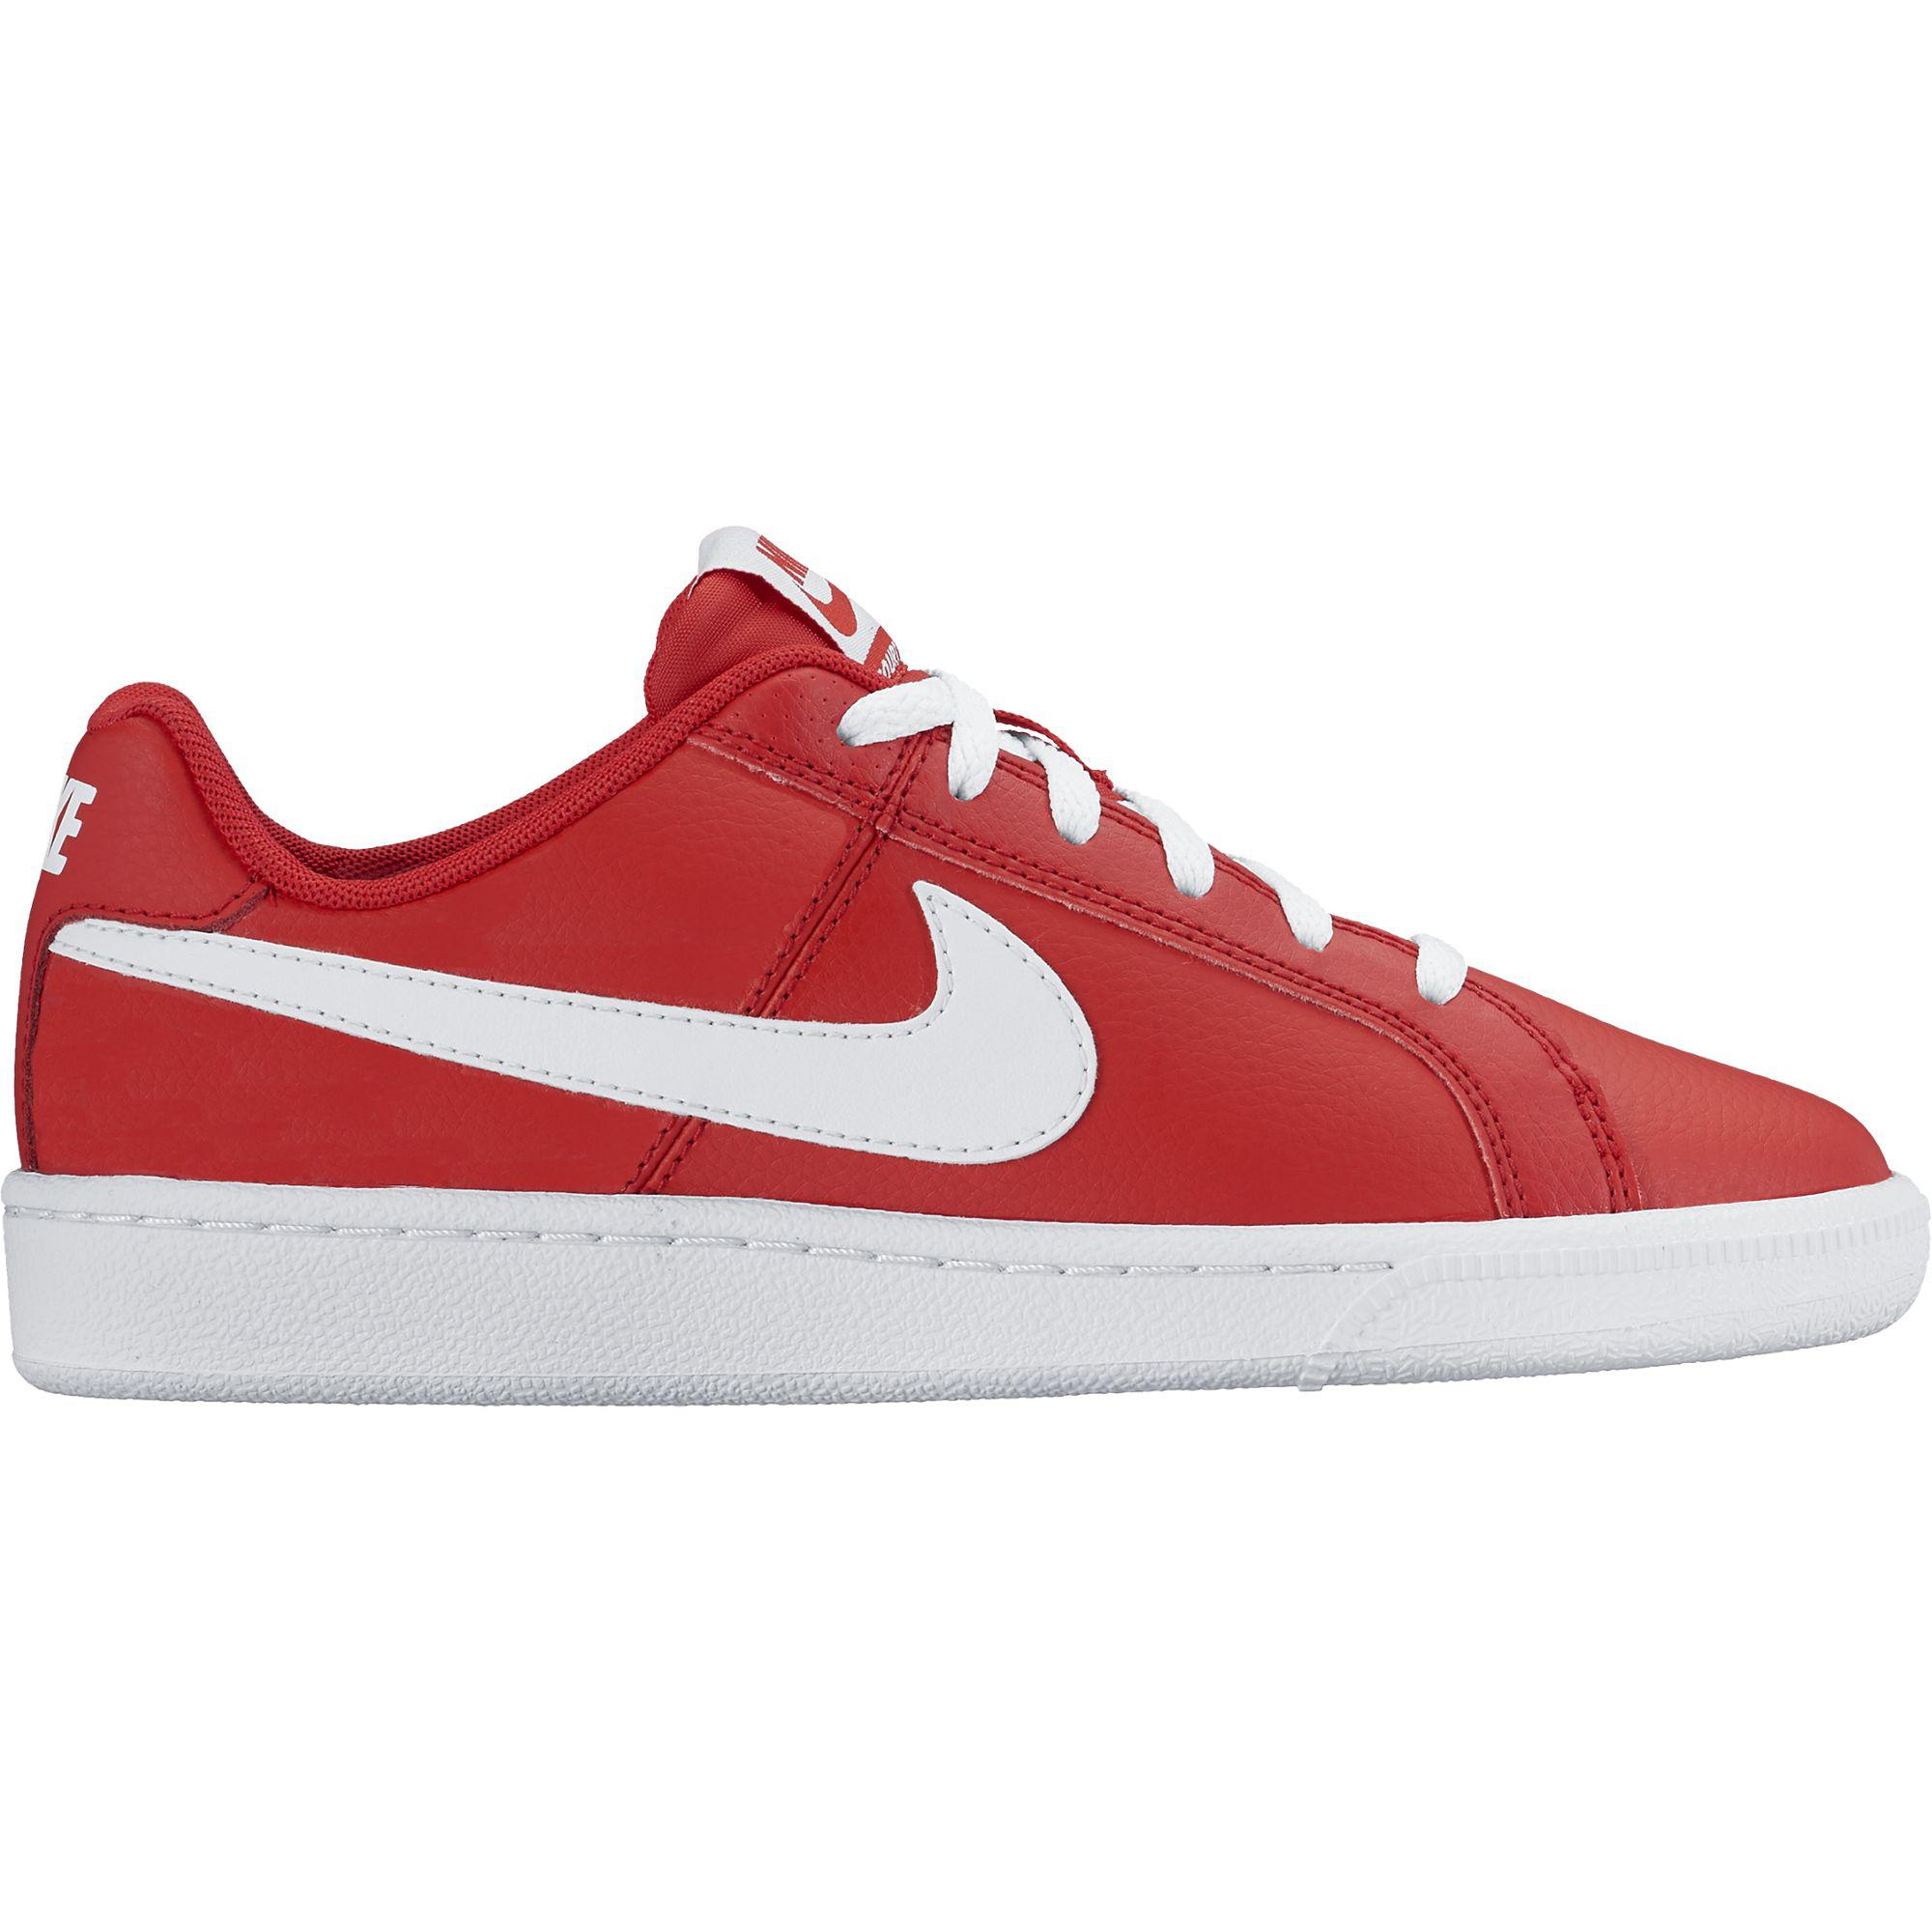 best loved 52fe0 a3aaa Nike Boys Court Royale Tennis Shoes - University RedWhite - Tennisnuts.com